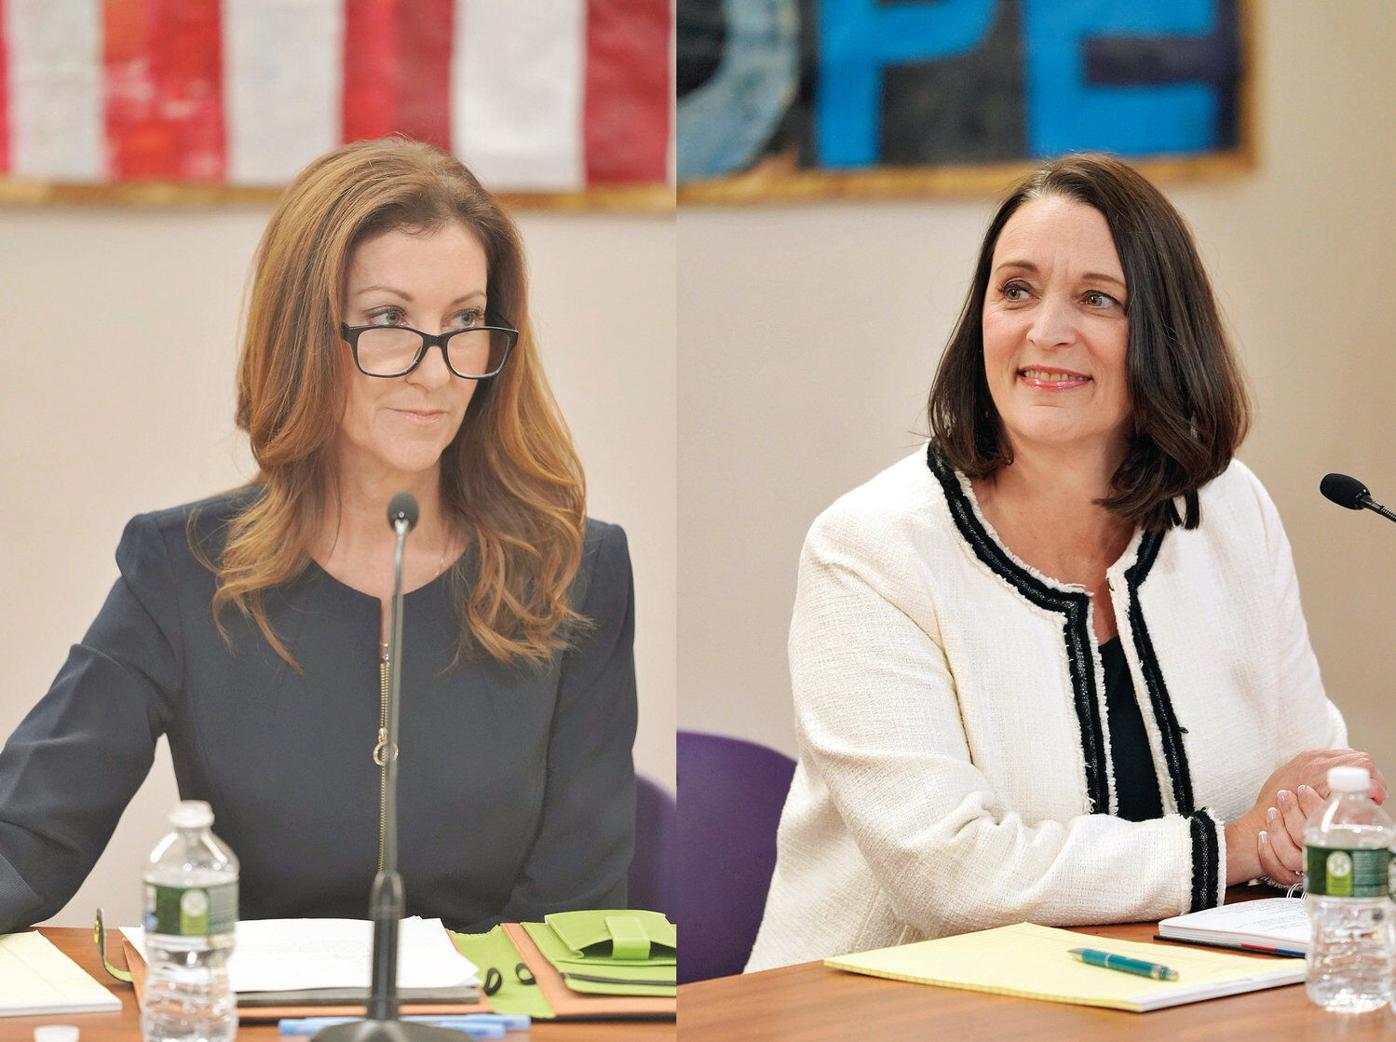 School retention front and center in Pittsfield mayoral debate